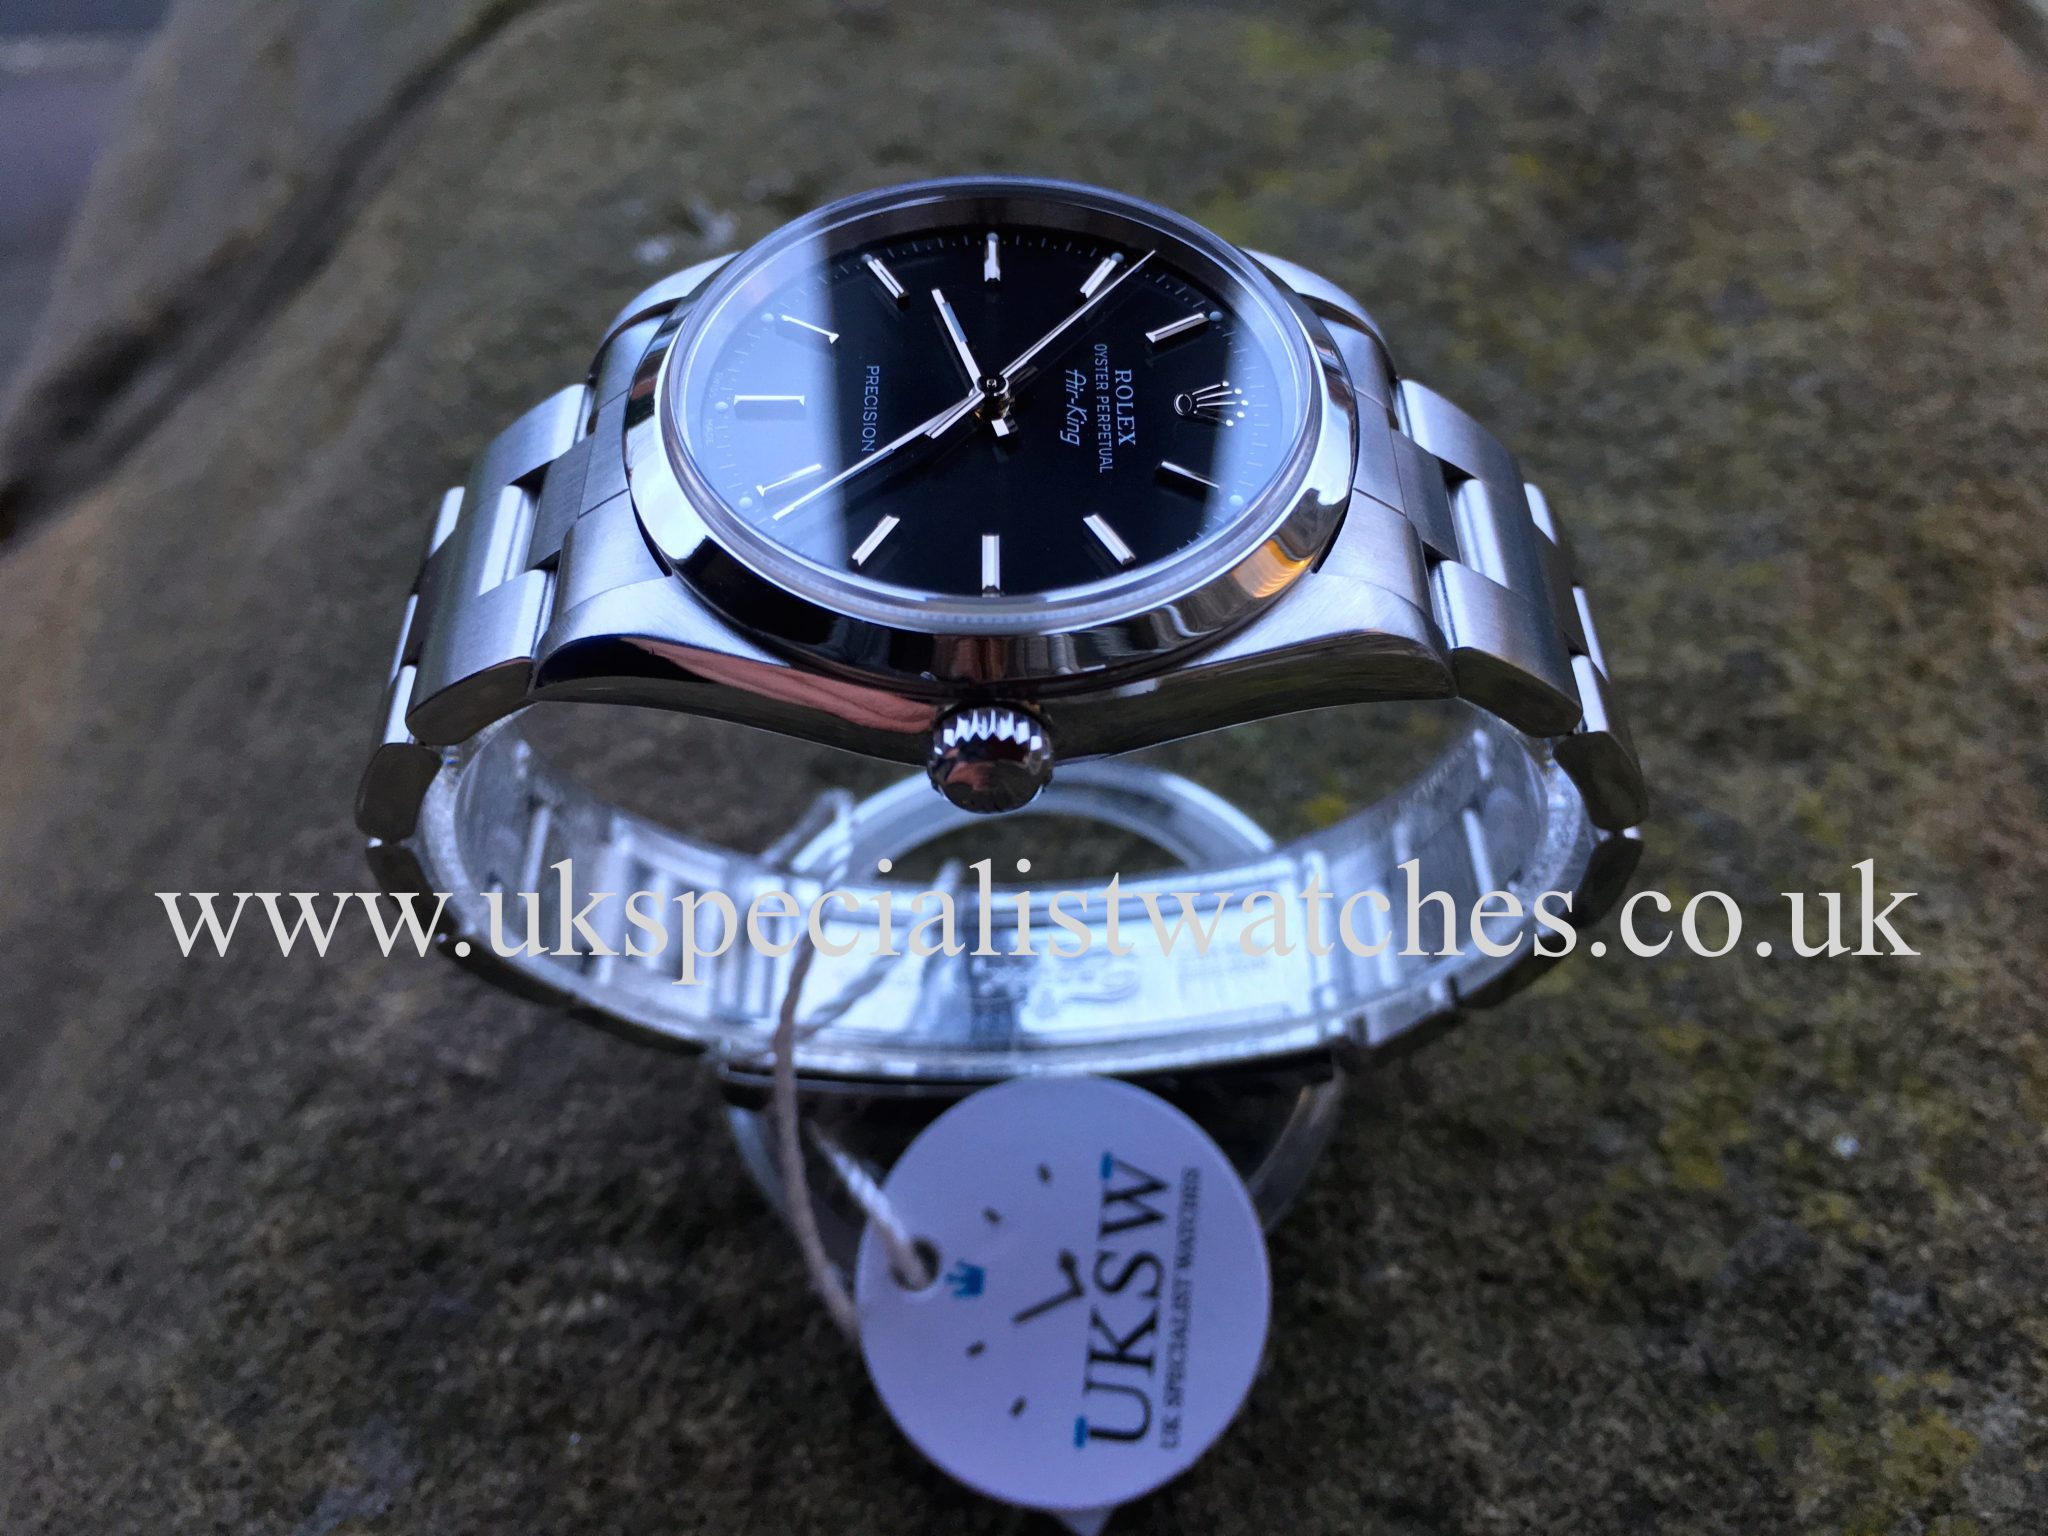 rolex air king precision 14000m stainless steel black dial rolex watches uk. Black Bedroom Furniture Sets. Home Design Ideas